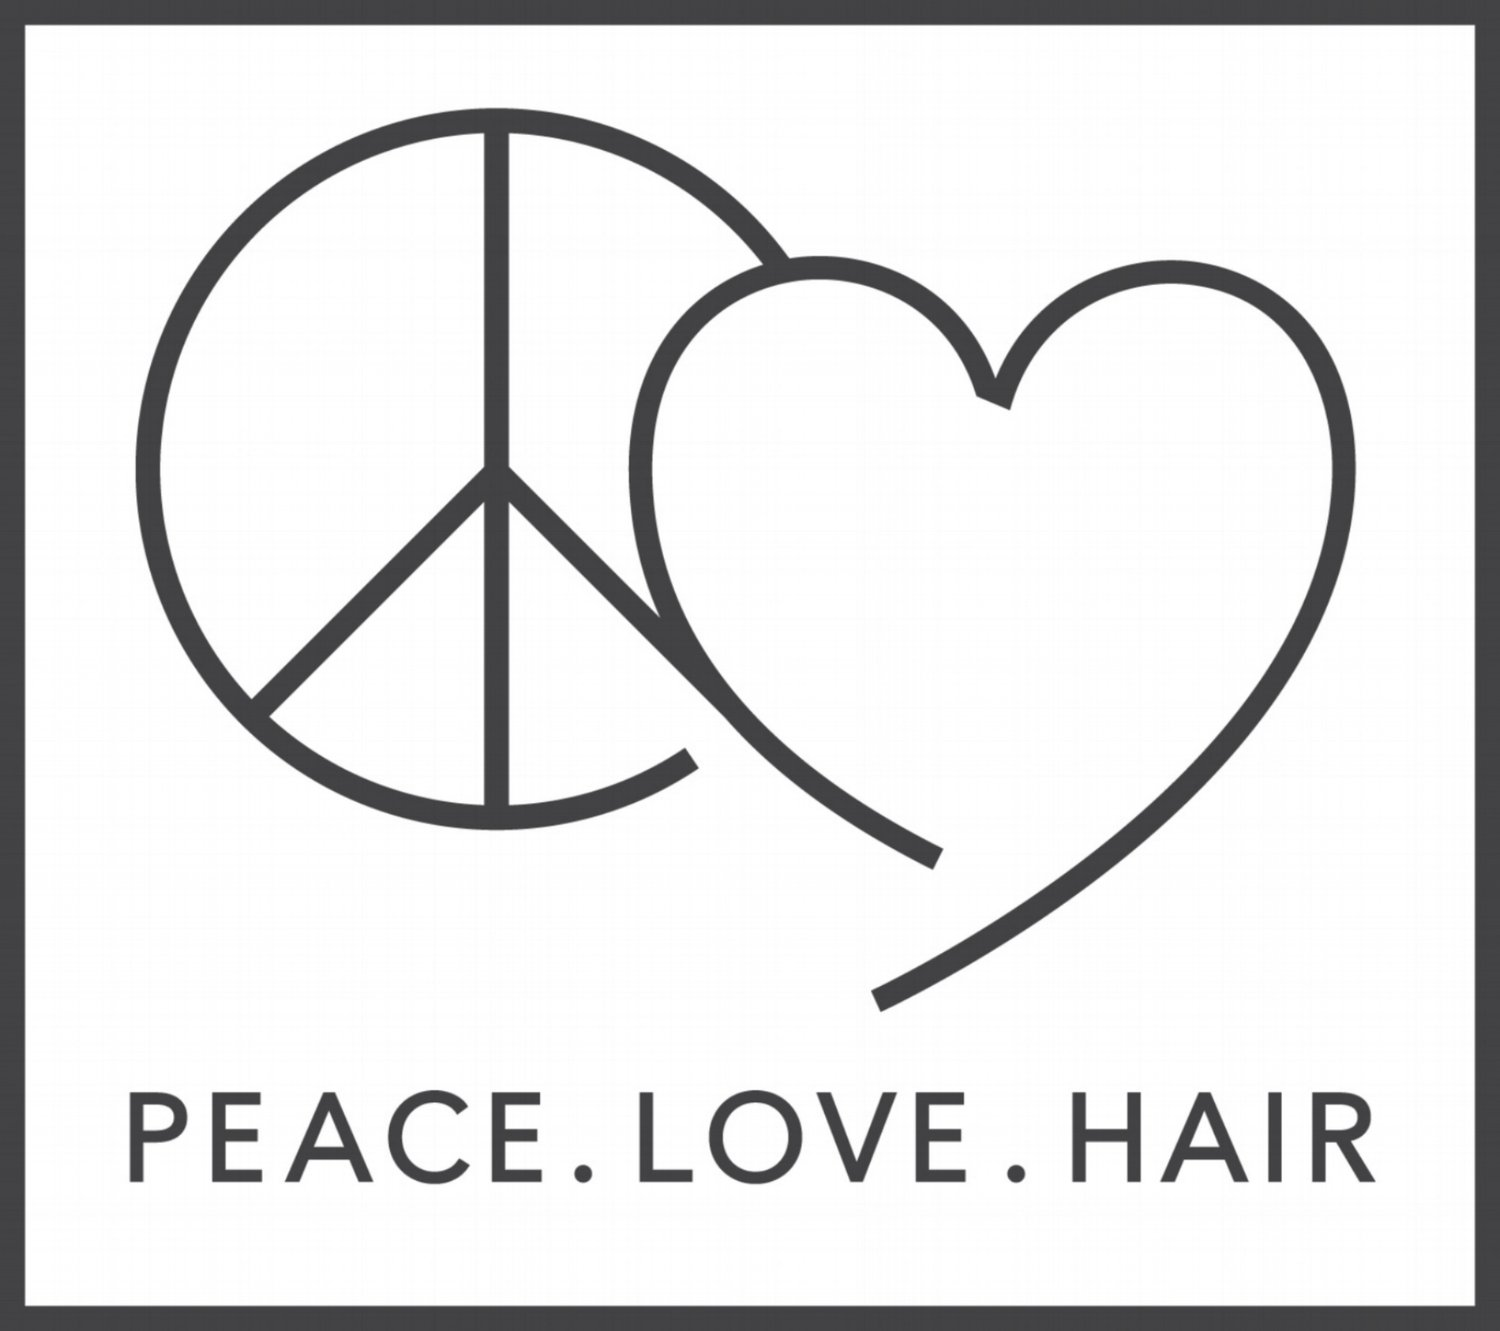 Peace. Love. Hair.